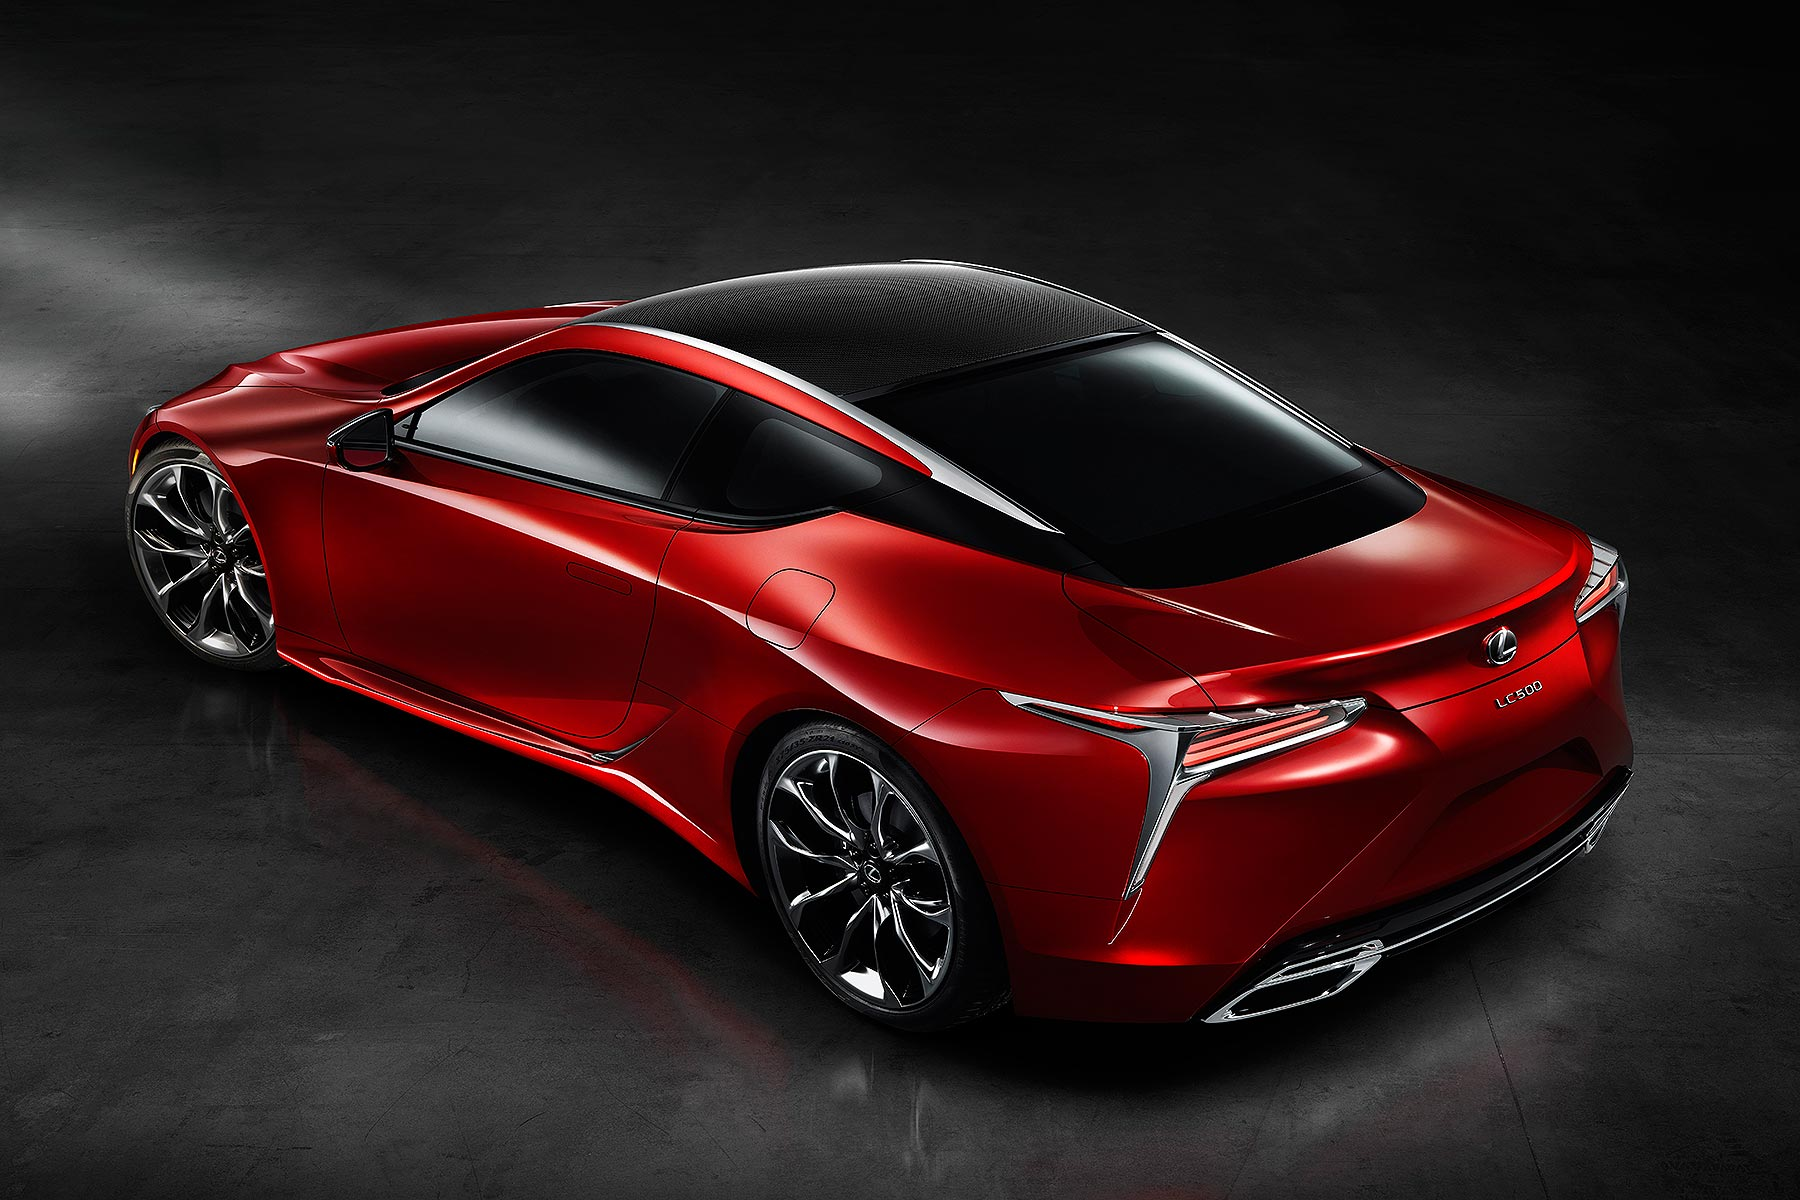 Detroit 2016 Lexus Lc 500 Luxury Coupe Revealed At Naias Motoring